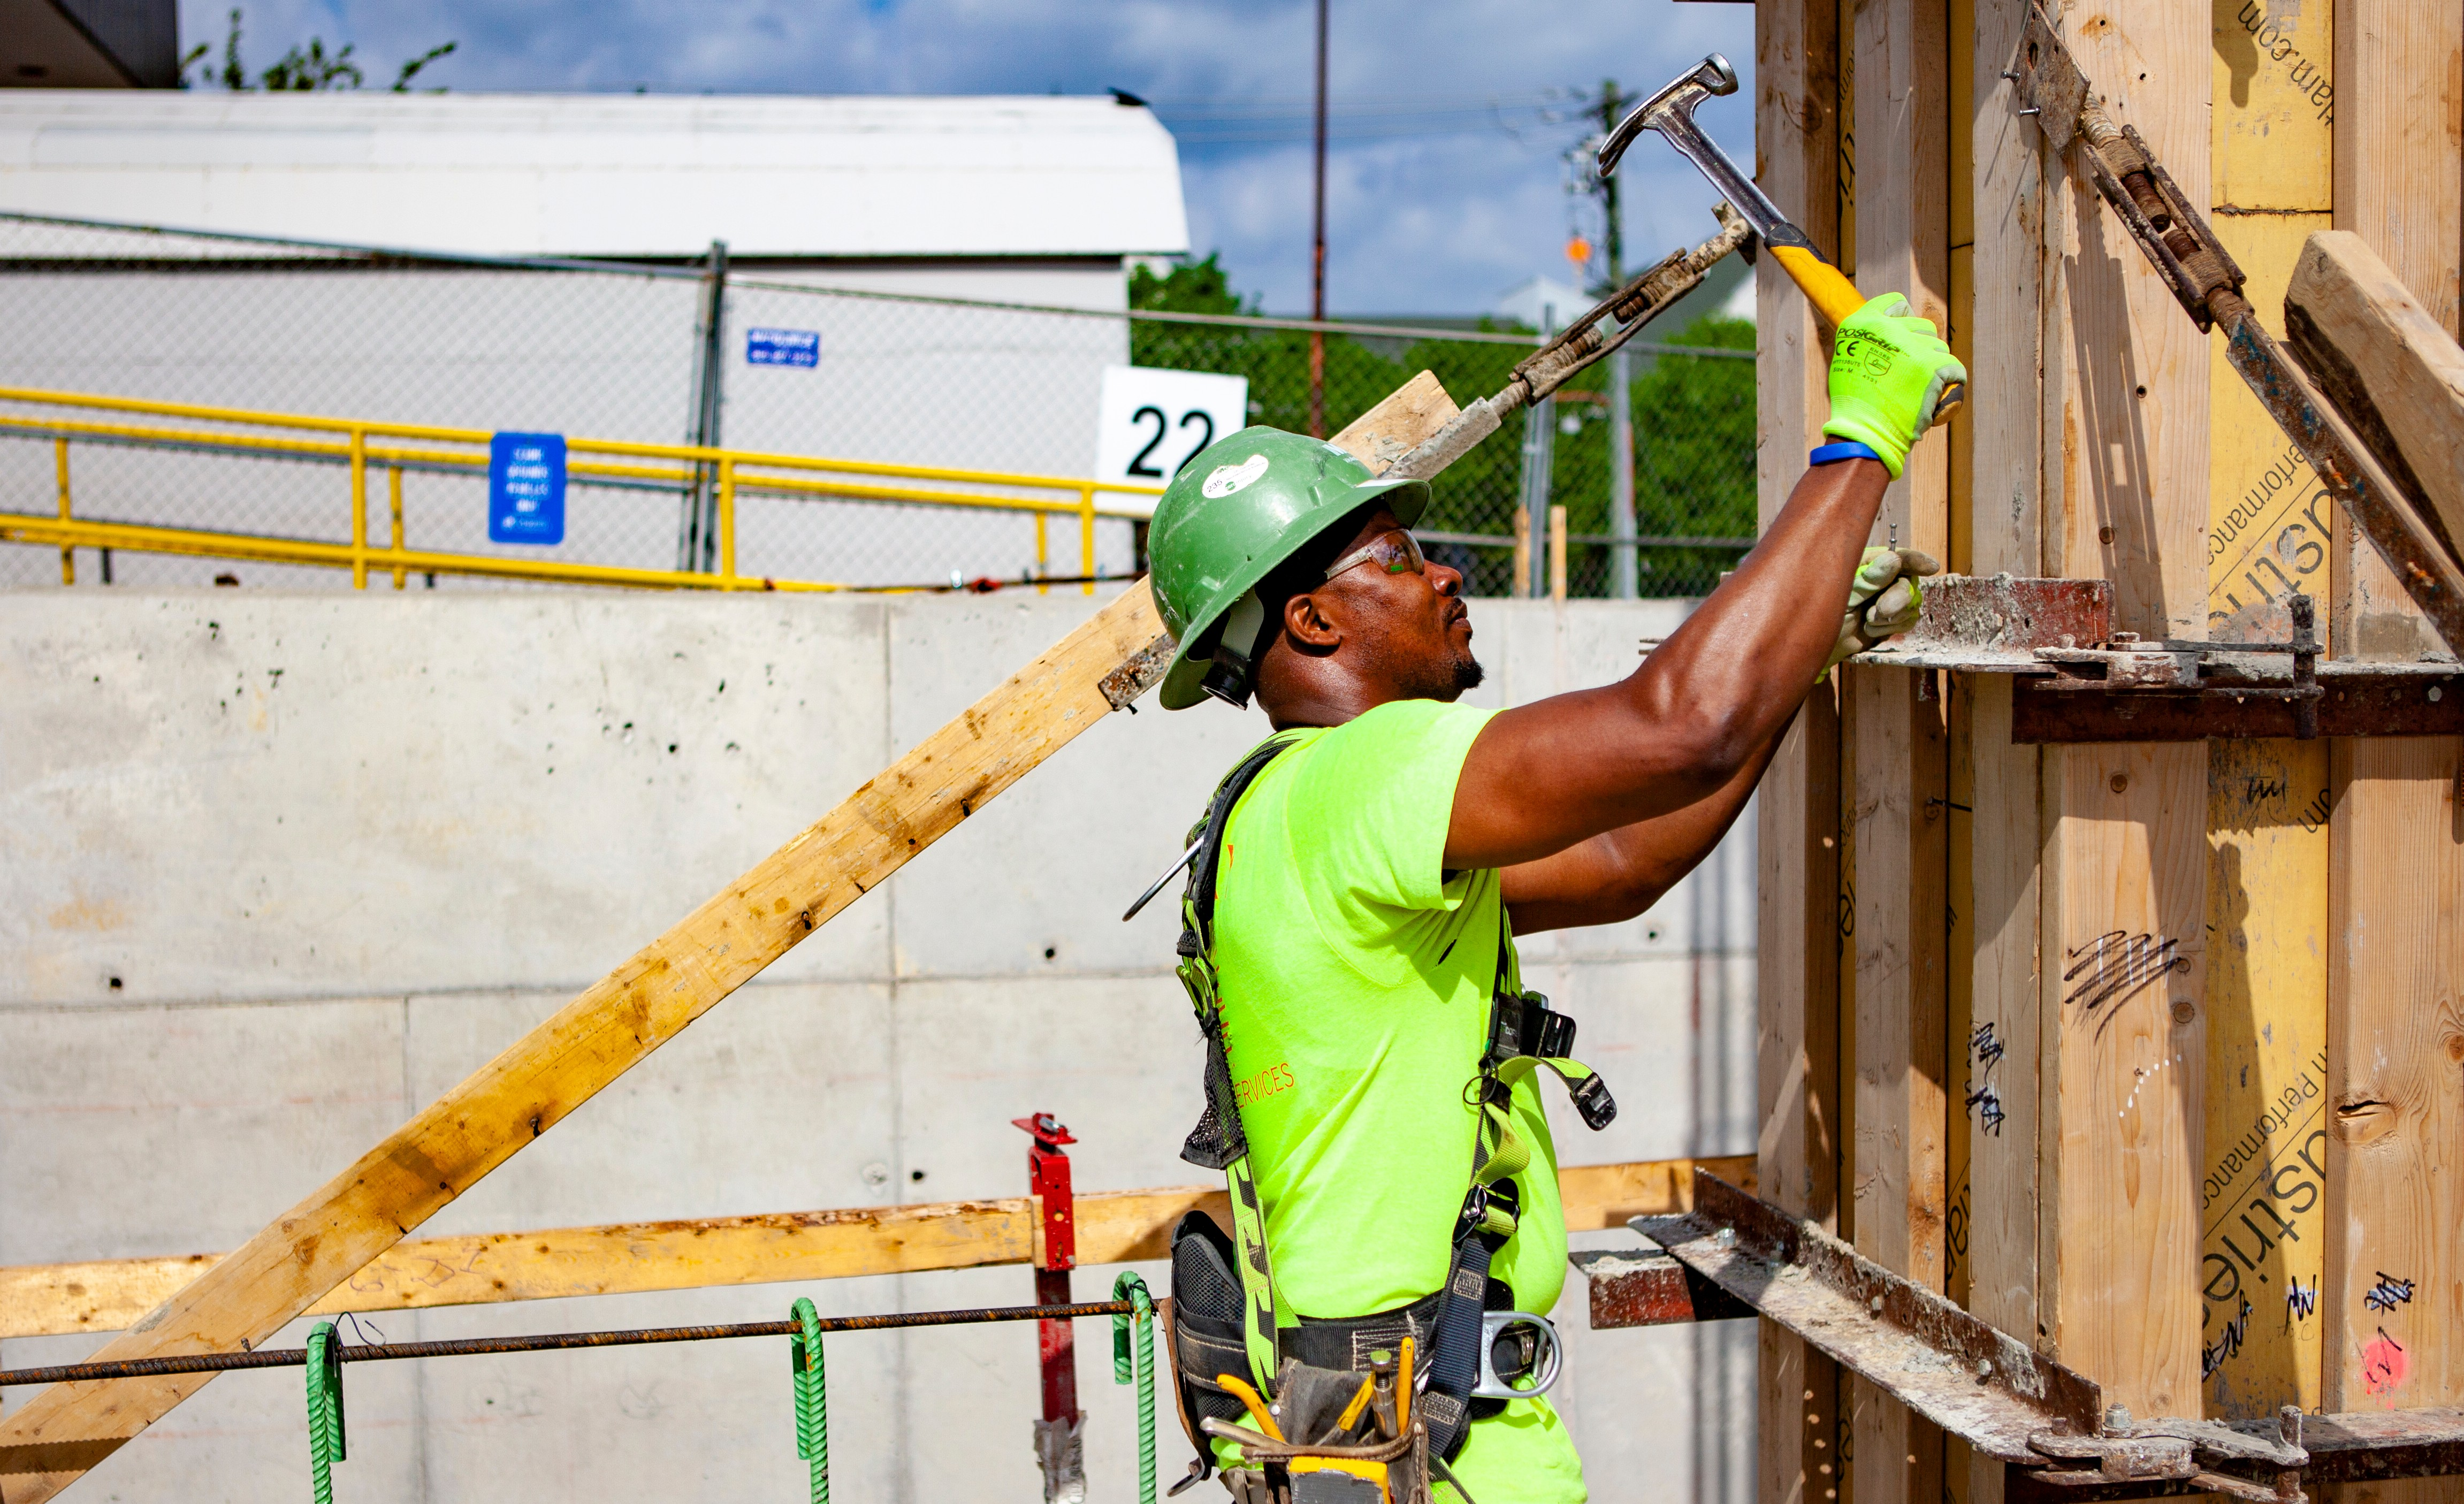 One construction worker hammering a board at a construction site.